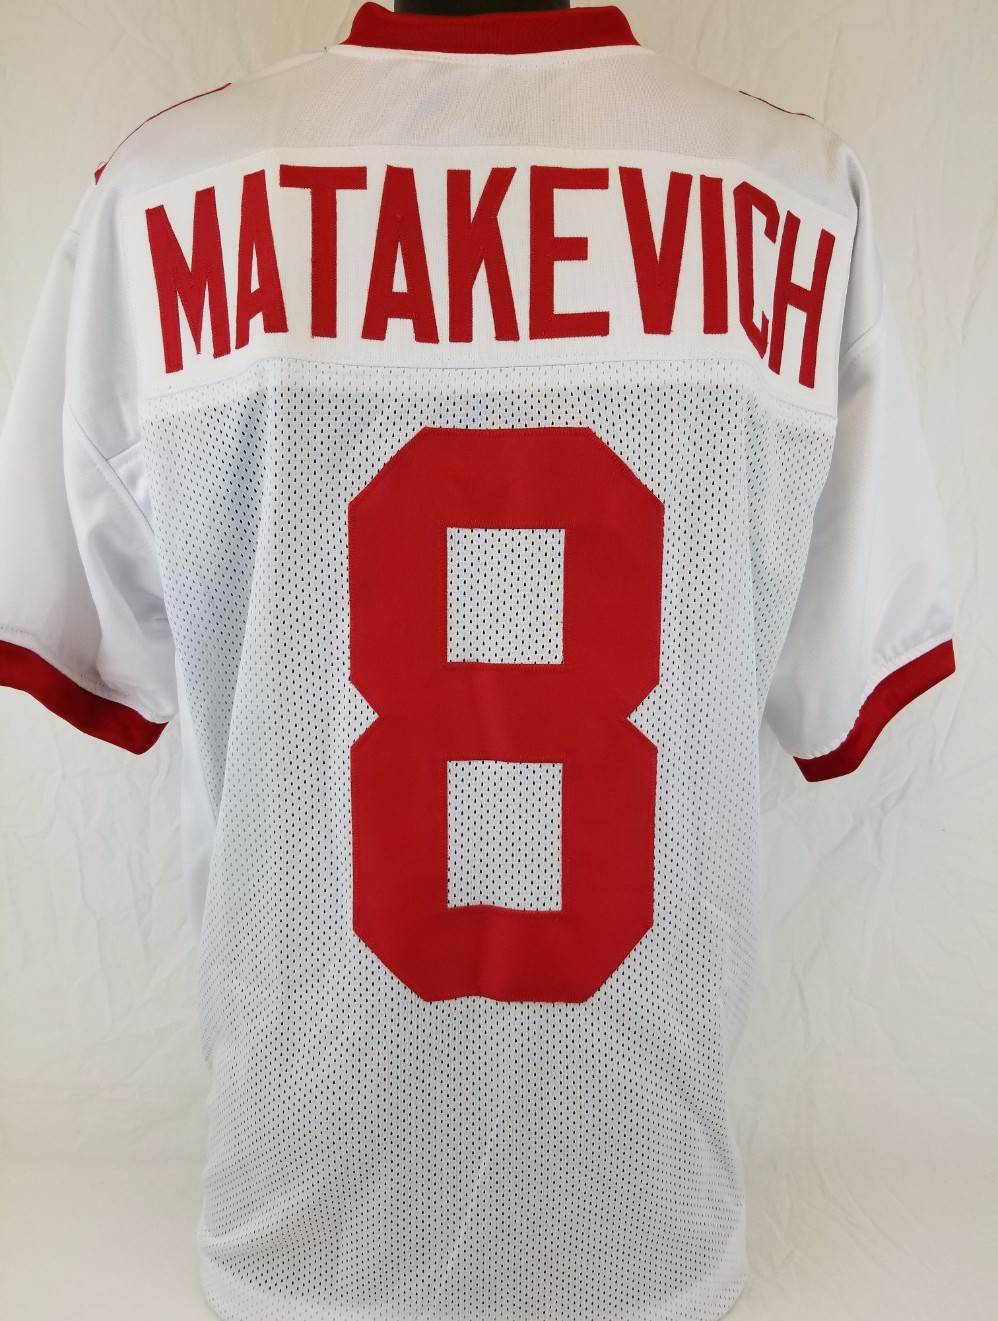 tyler matakevich temple jersey